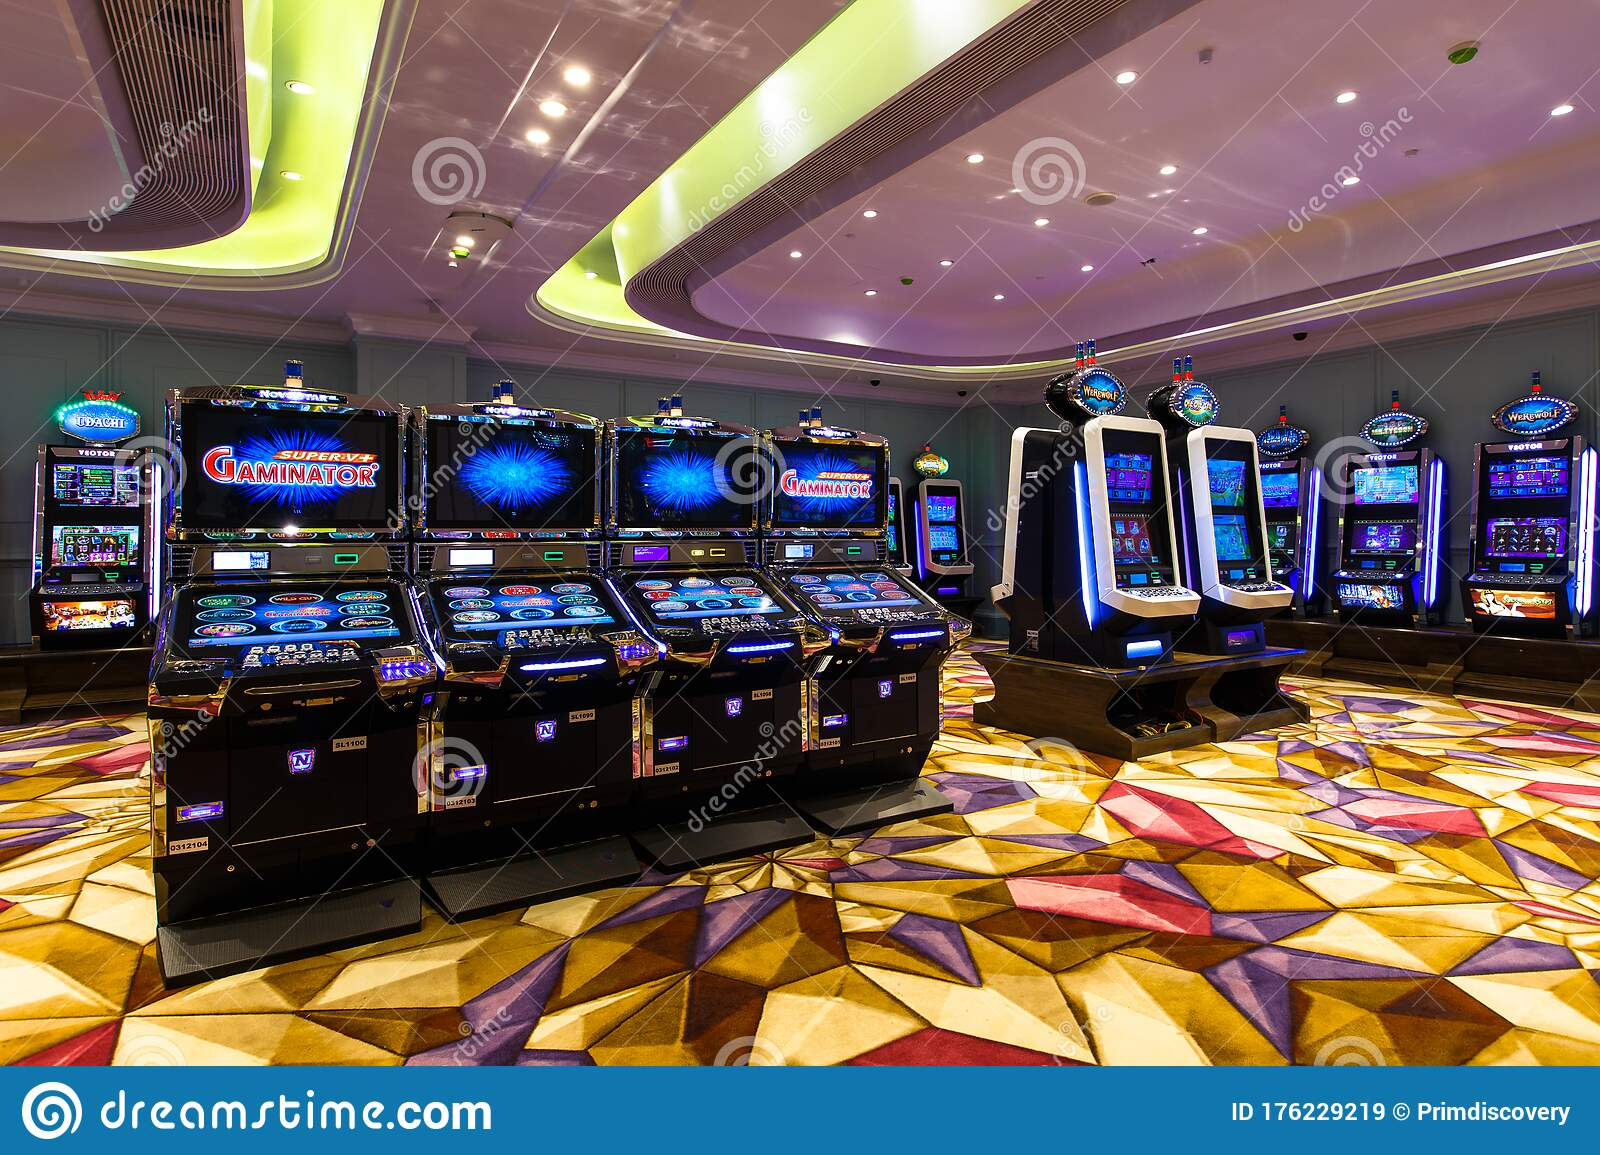 Slot Machines A One Armed Bandit In A New Casino In The Gambling Zone In Russia Without People Editorial Stock Image Image Of Addiction Lucky 176229219